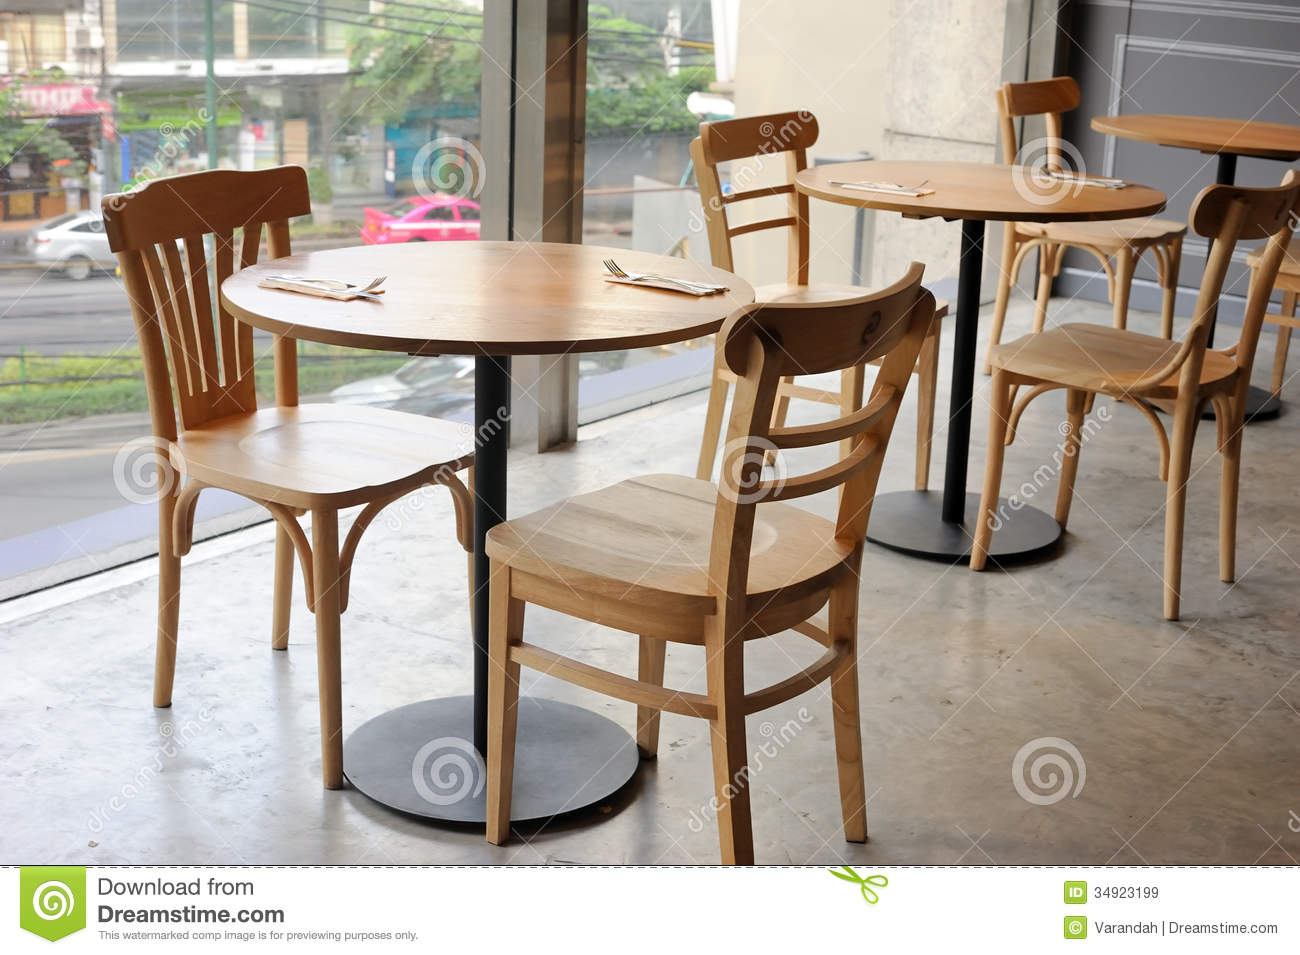 ... In Cafe Near Glass Wall Royalty Free Stock Images - Image: 34923199